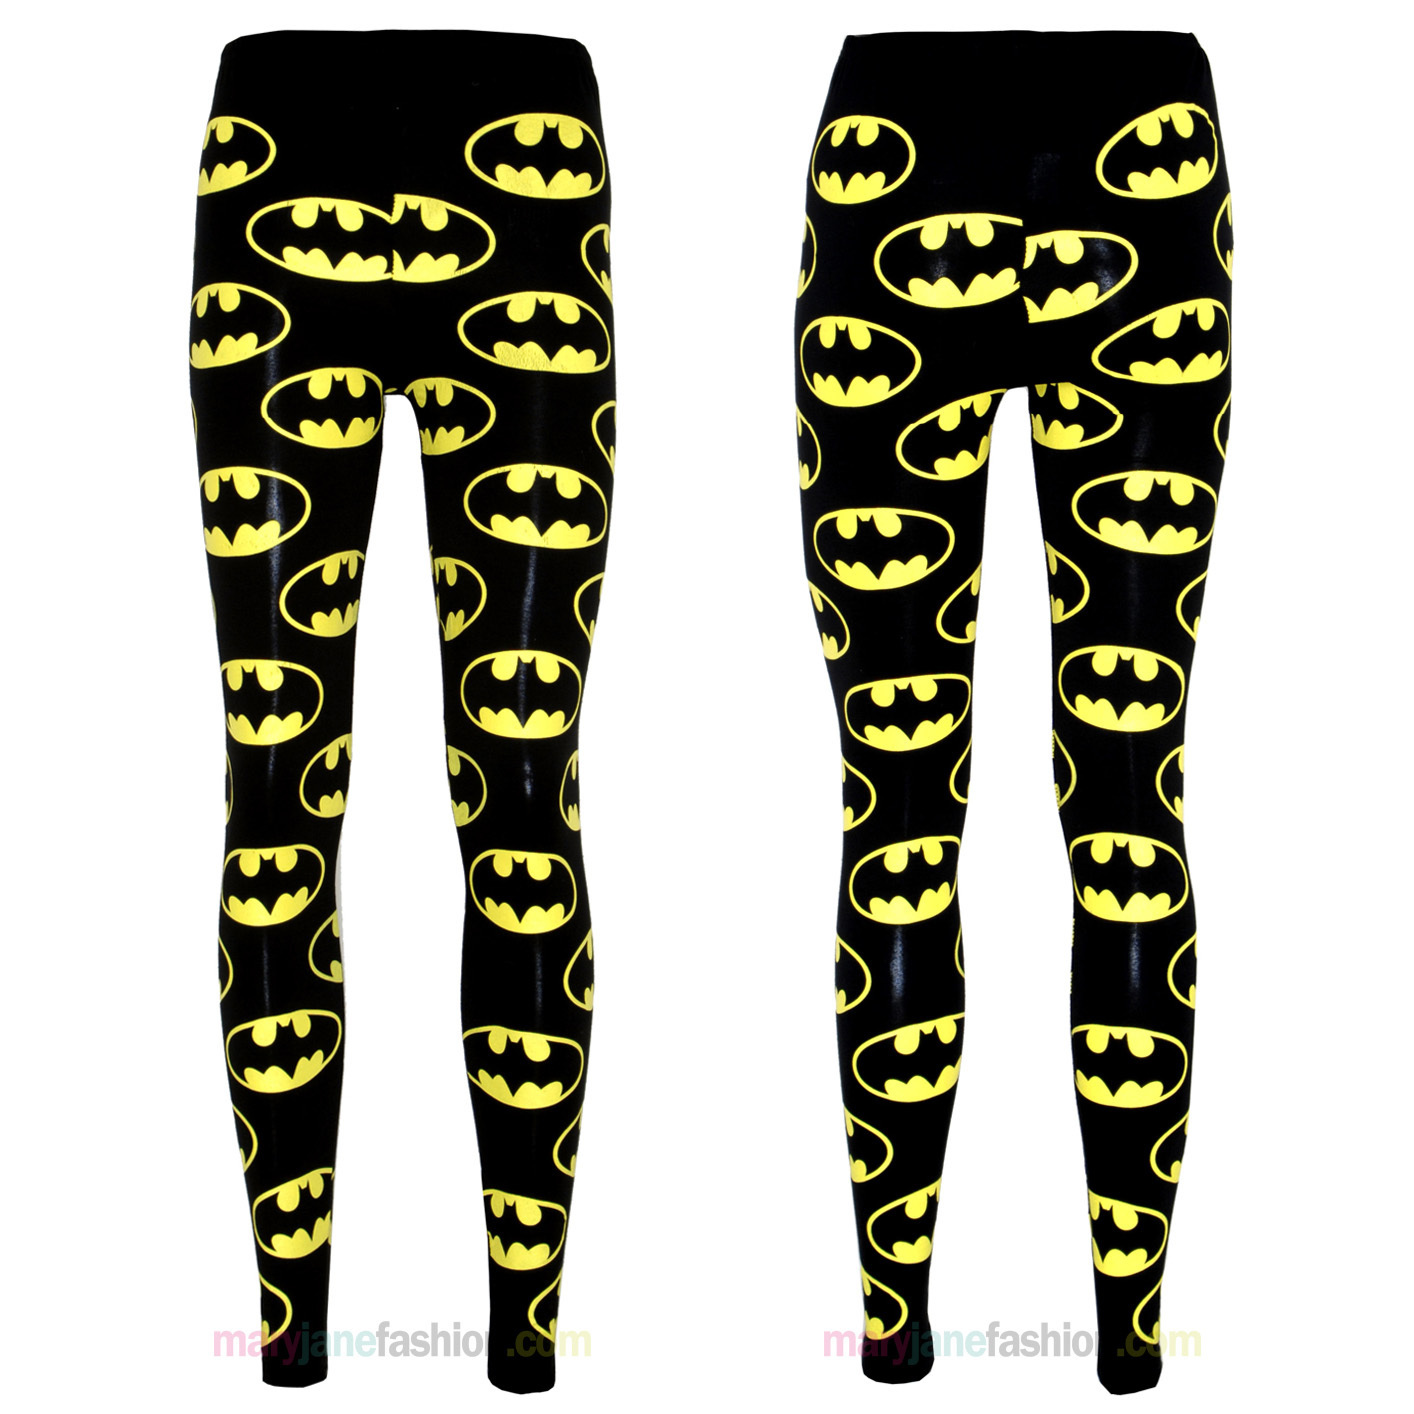 Find great deals on eBay for batman leggings. Shop with confidence.